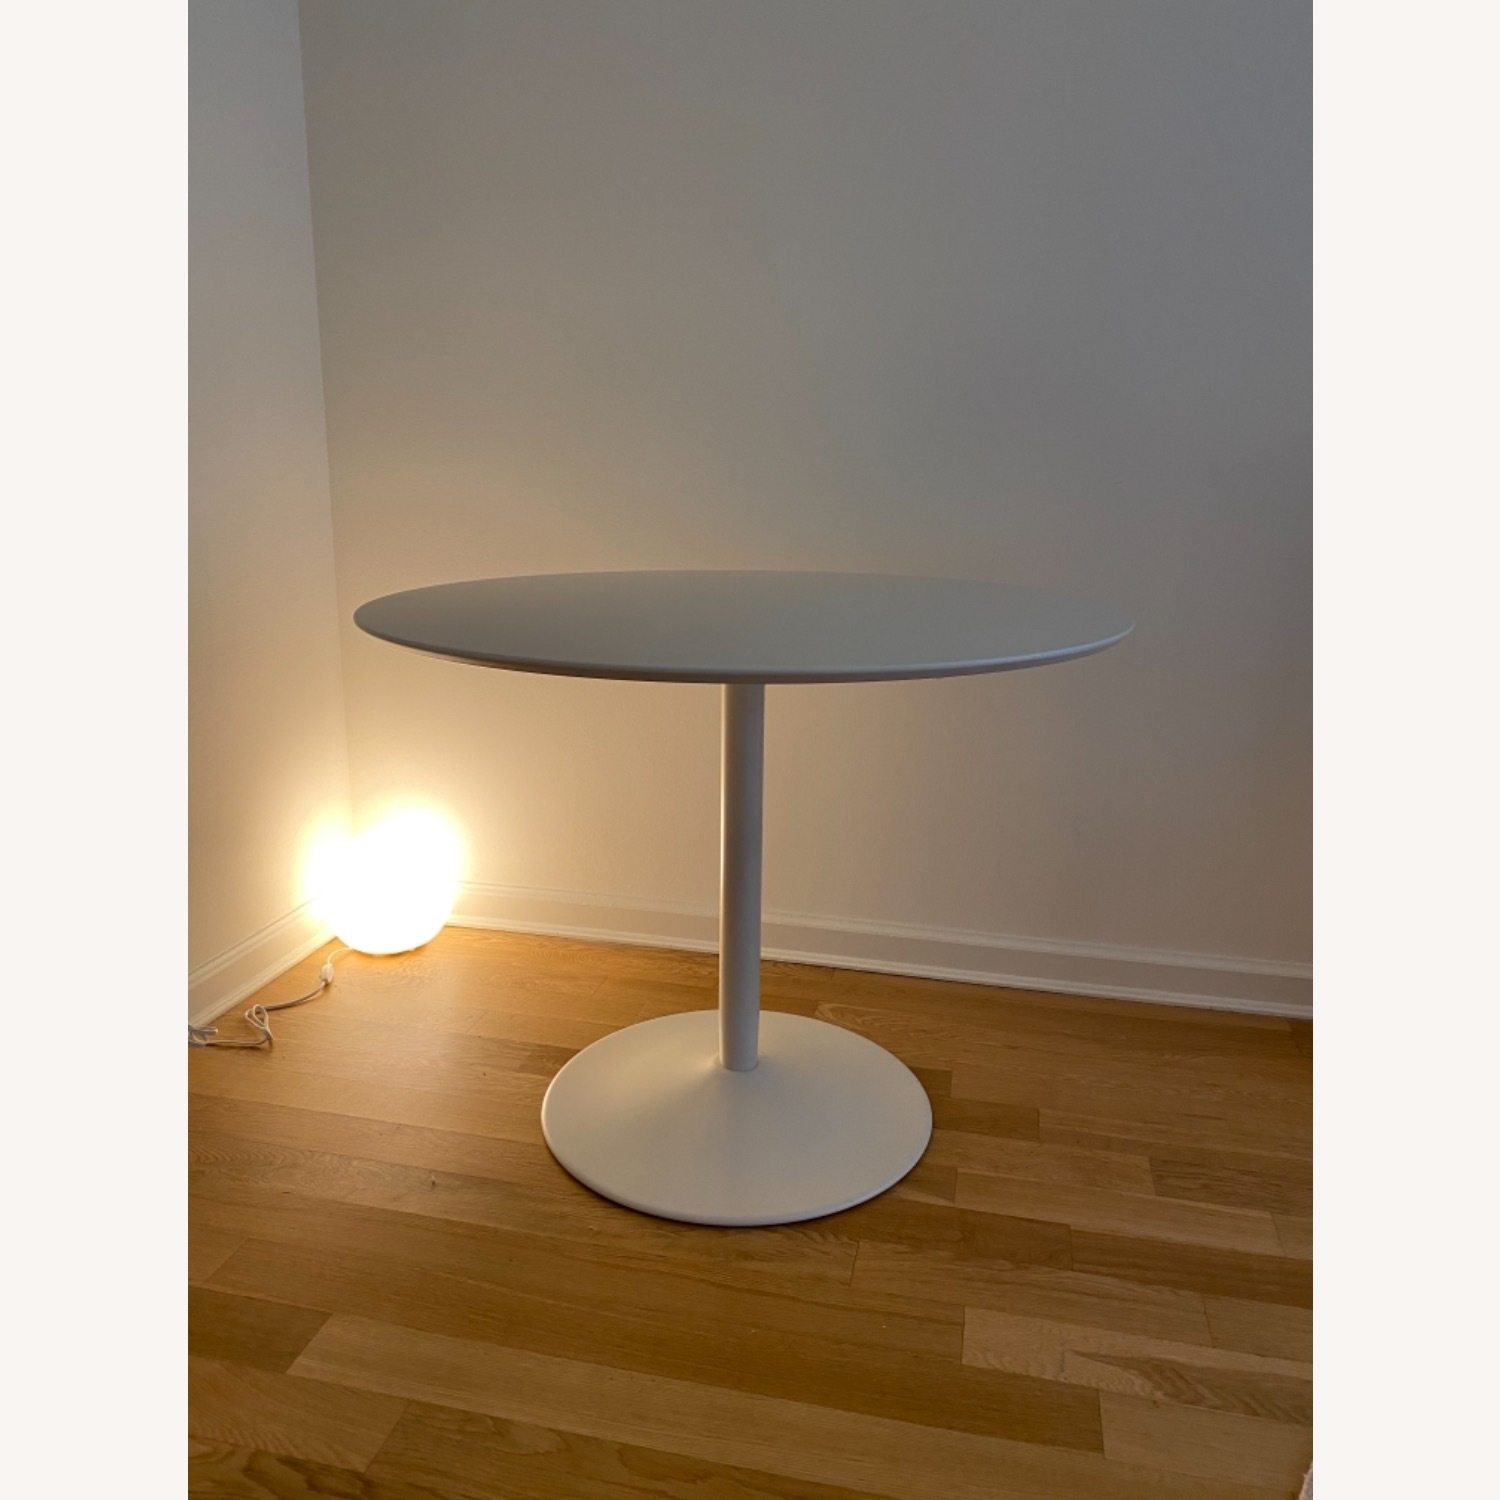 CB2 Odyssey Round Dining Table - image-1